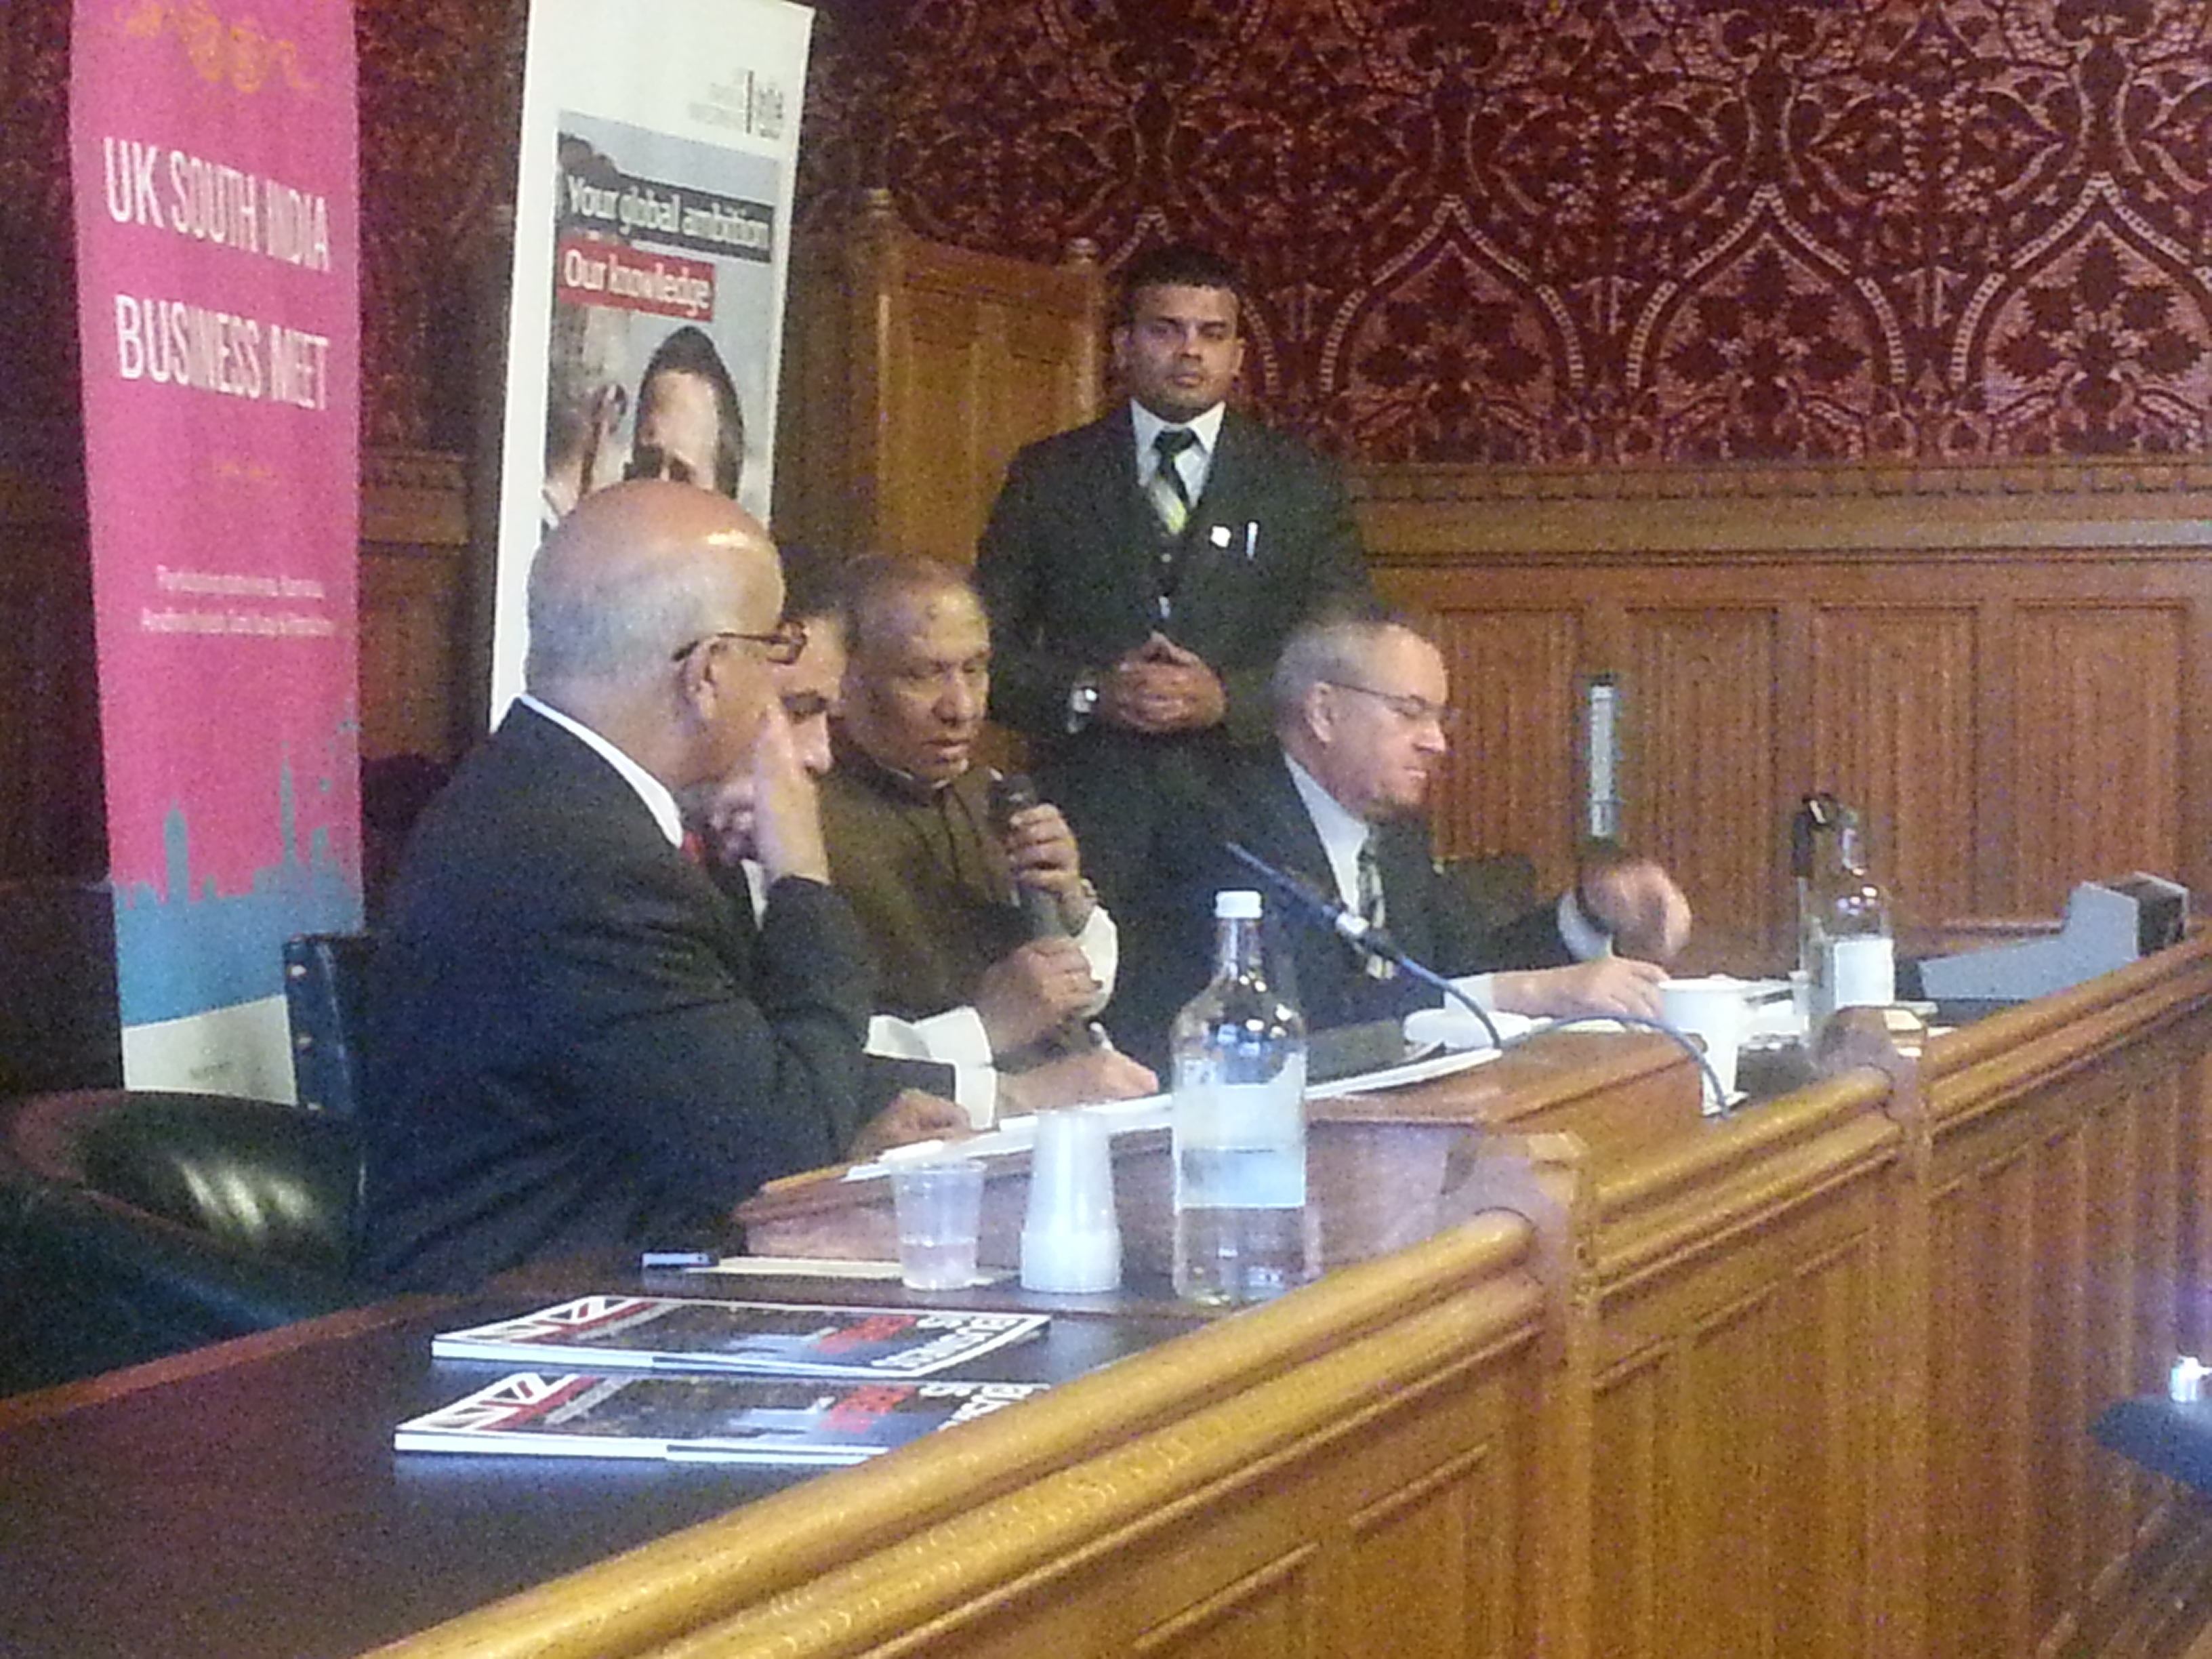 UK South India Business Meet 2012